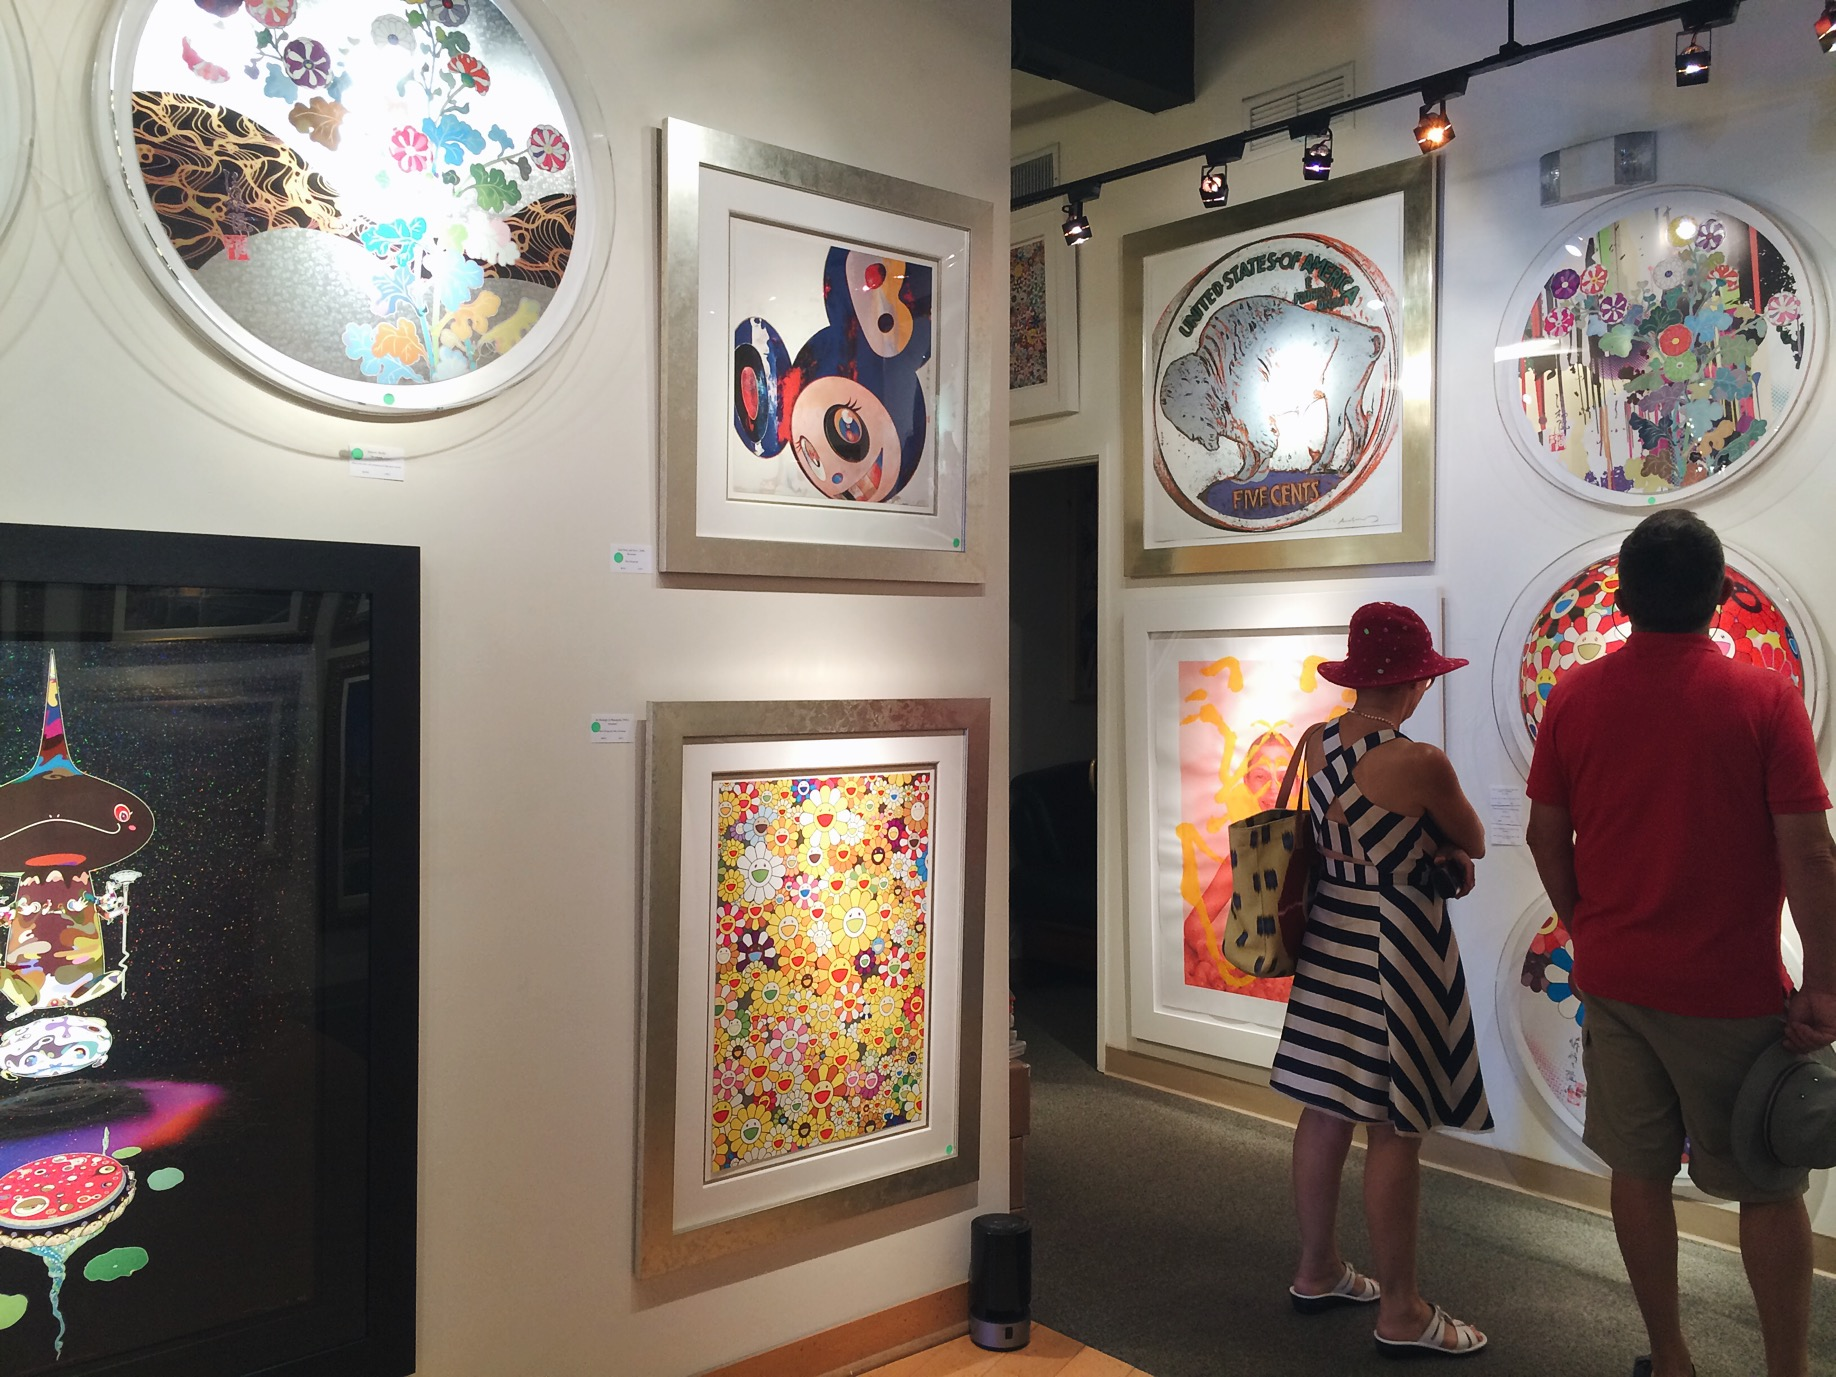 We checked out an art gallery that had Andy Warhol and Murakami's work.